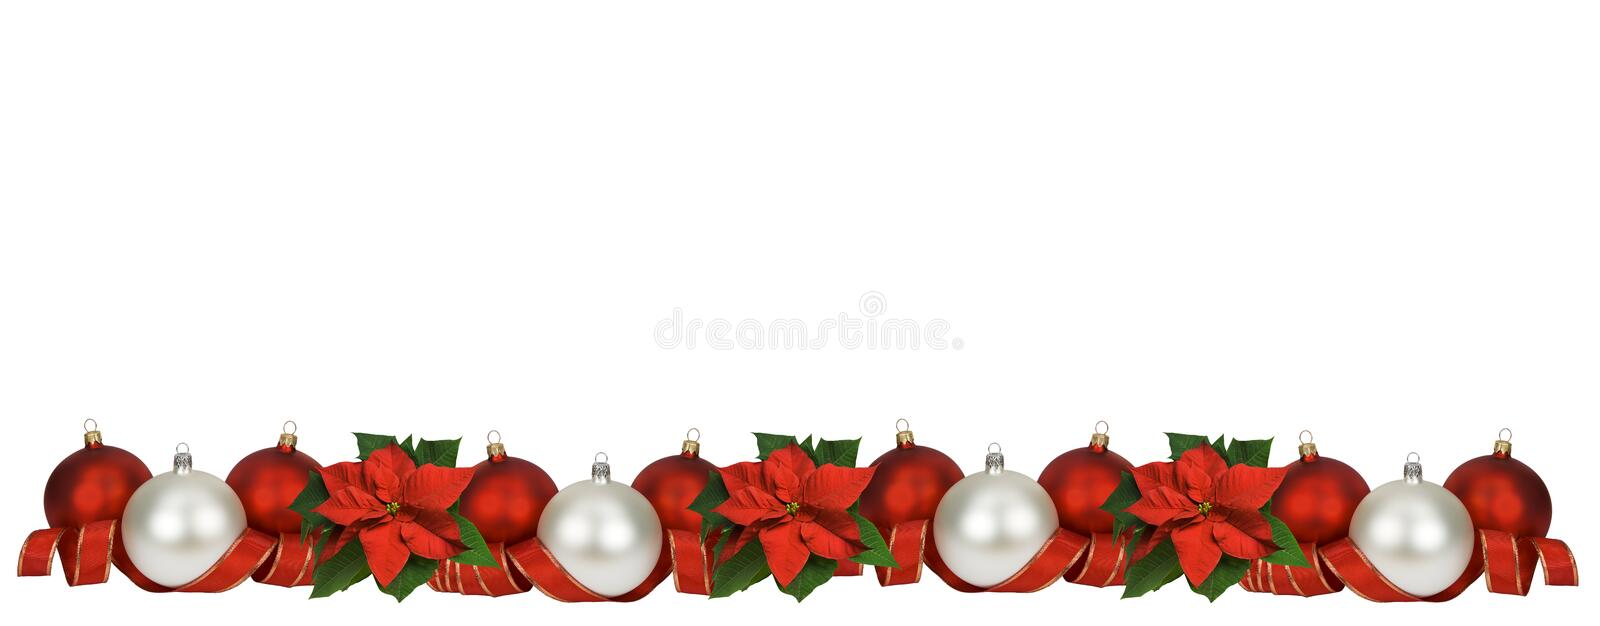 Horizontal christmas border stock image